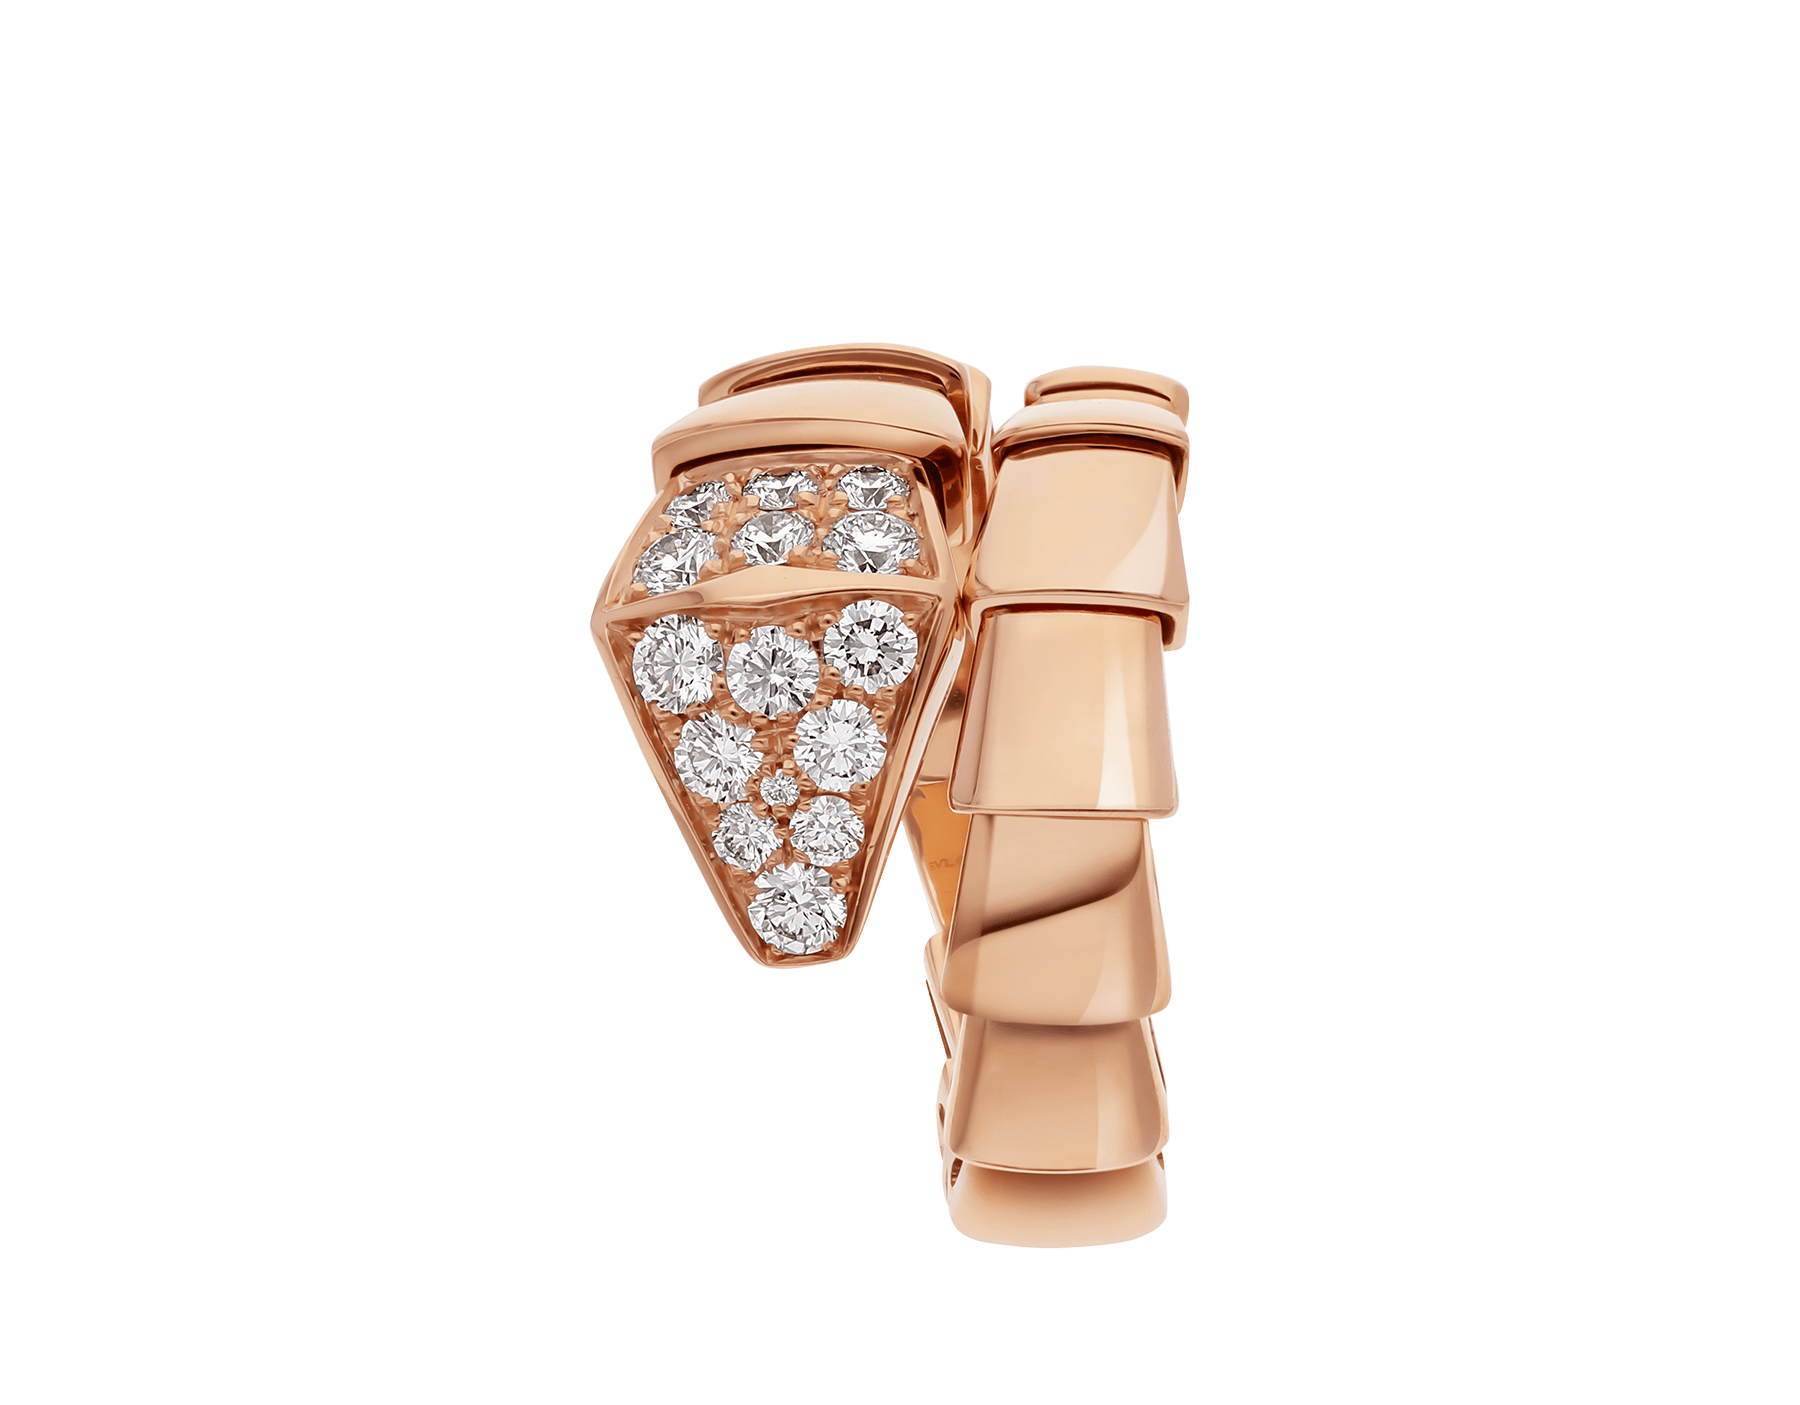 Serpenti Viper one-coil ring in 18 kt rose gold, set with pavé diamonds on the head. AN855318 image 2